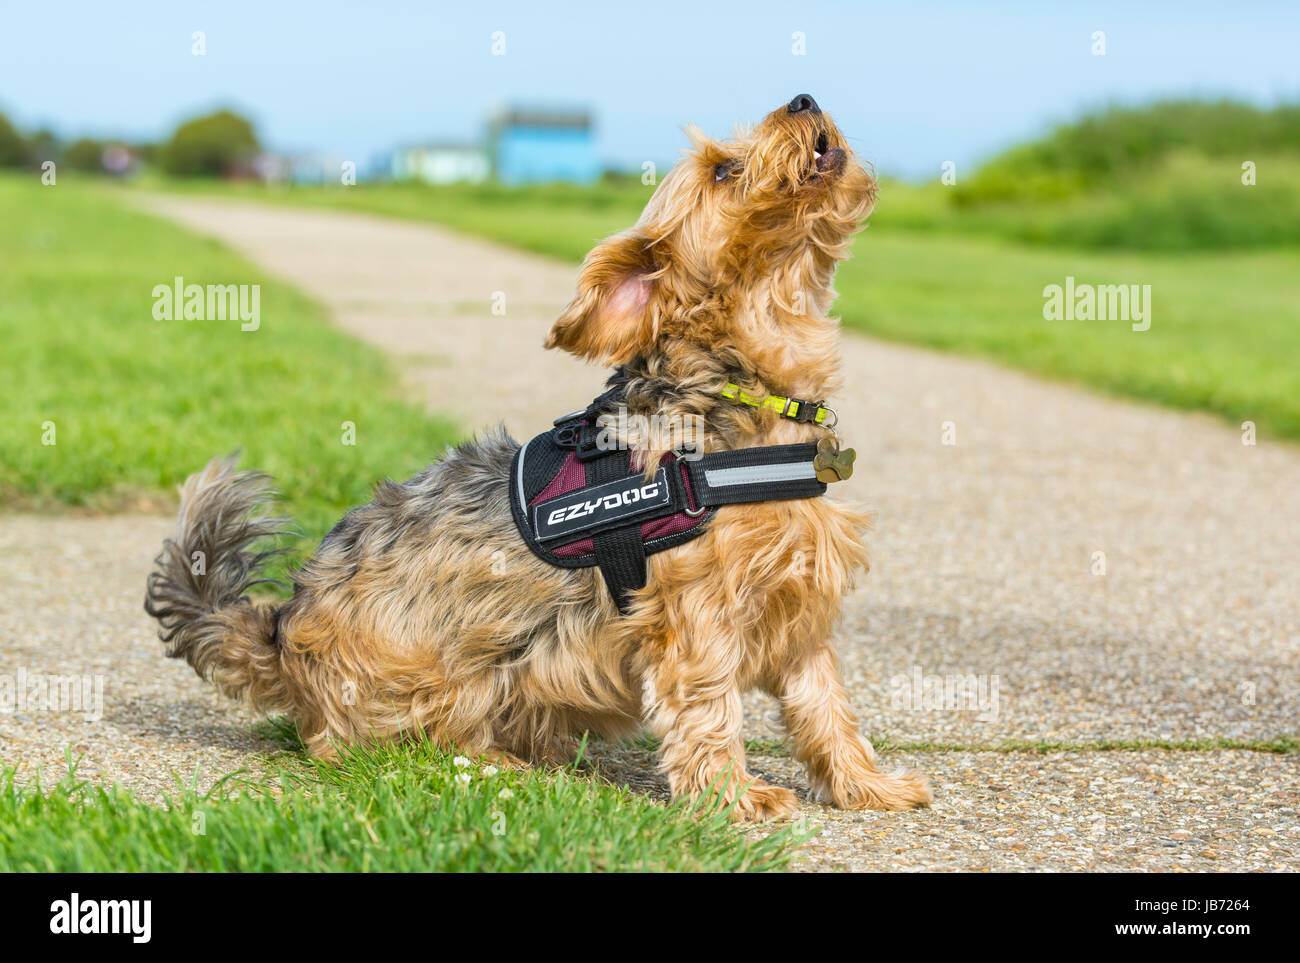 Dog sitting. Yorkshire Terrier crossed with Border Collie dog sitting looking at owner. - Stock Image